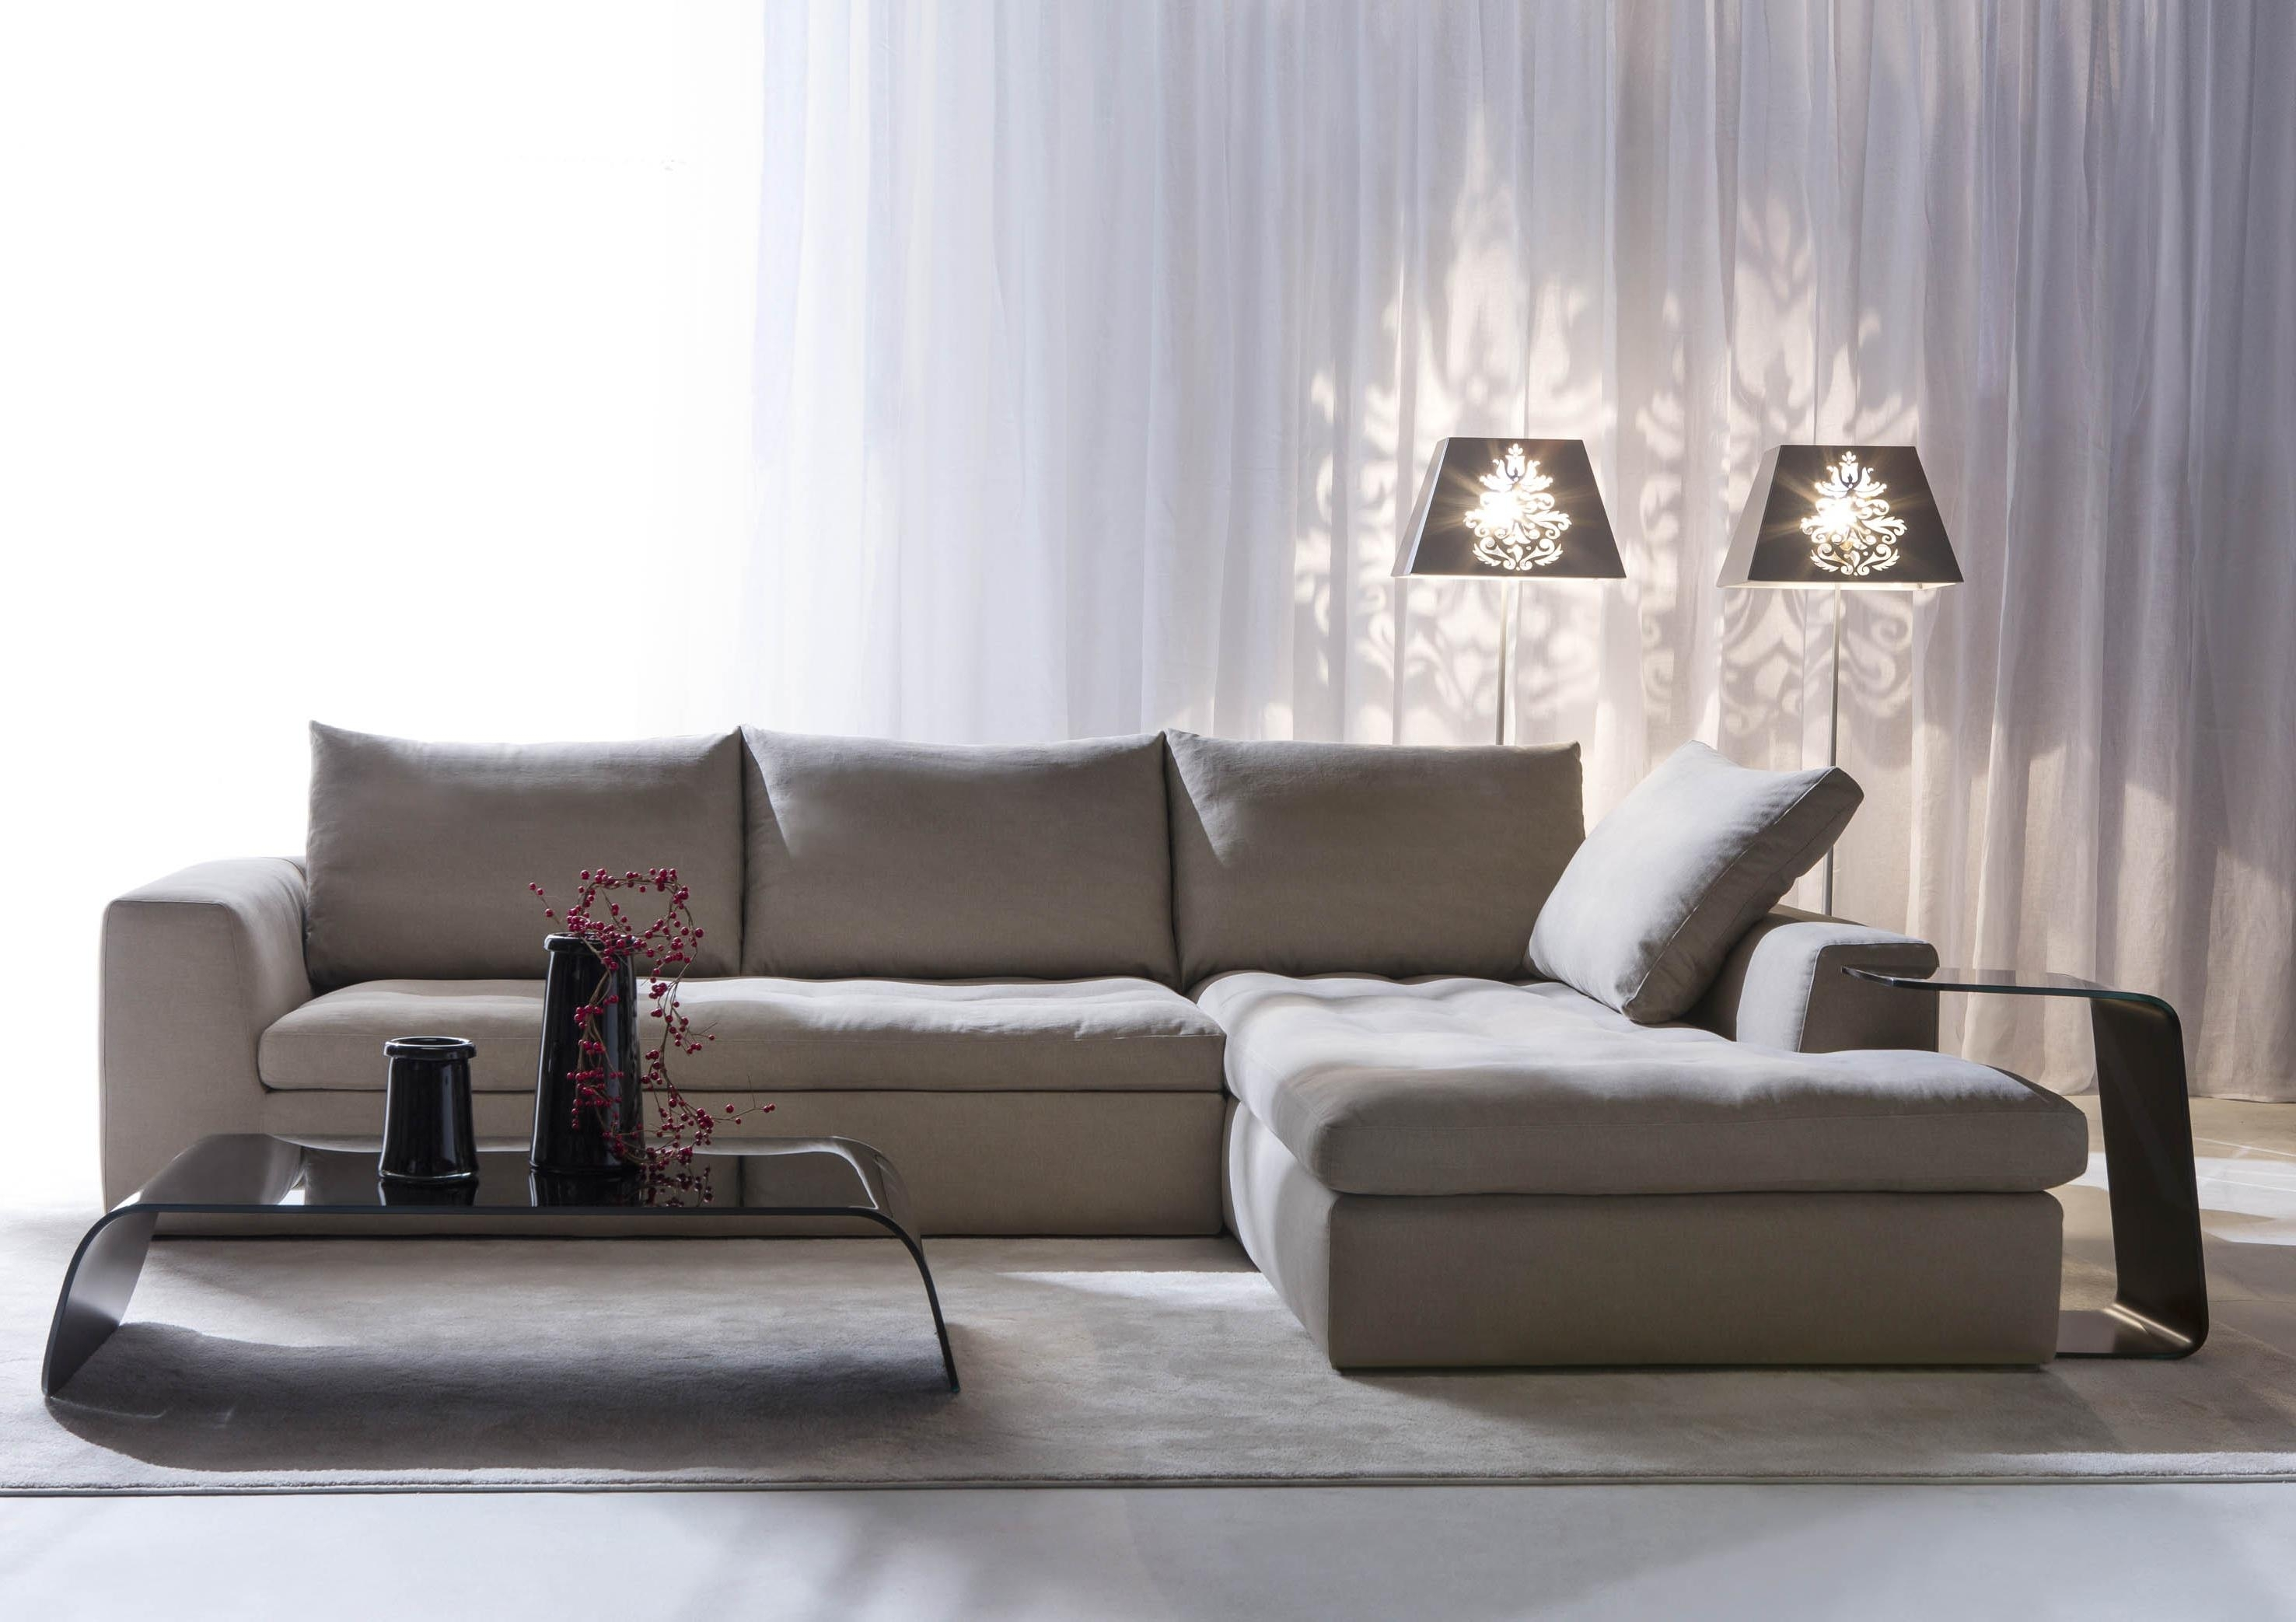 Sectional Sofa Design: Most High Class Wide Sectional Sofas Wide In Wide Sectional Sofas (View 2 of 10)